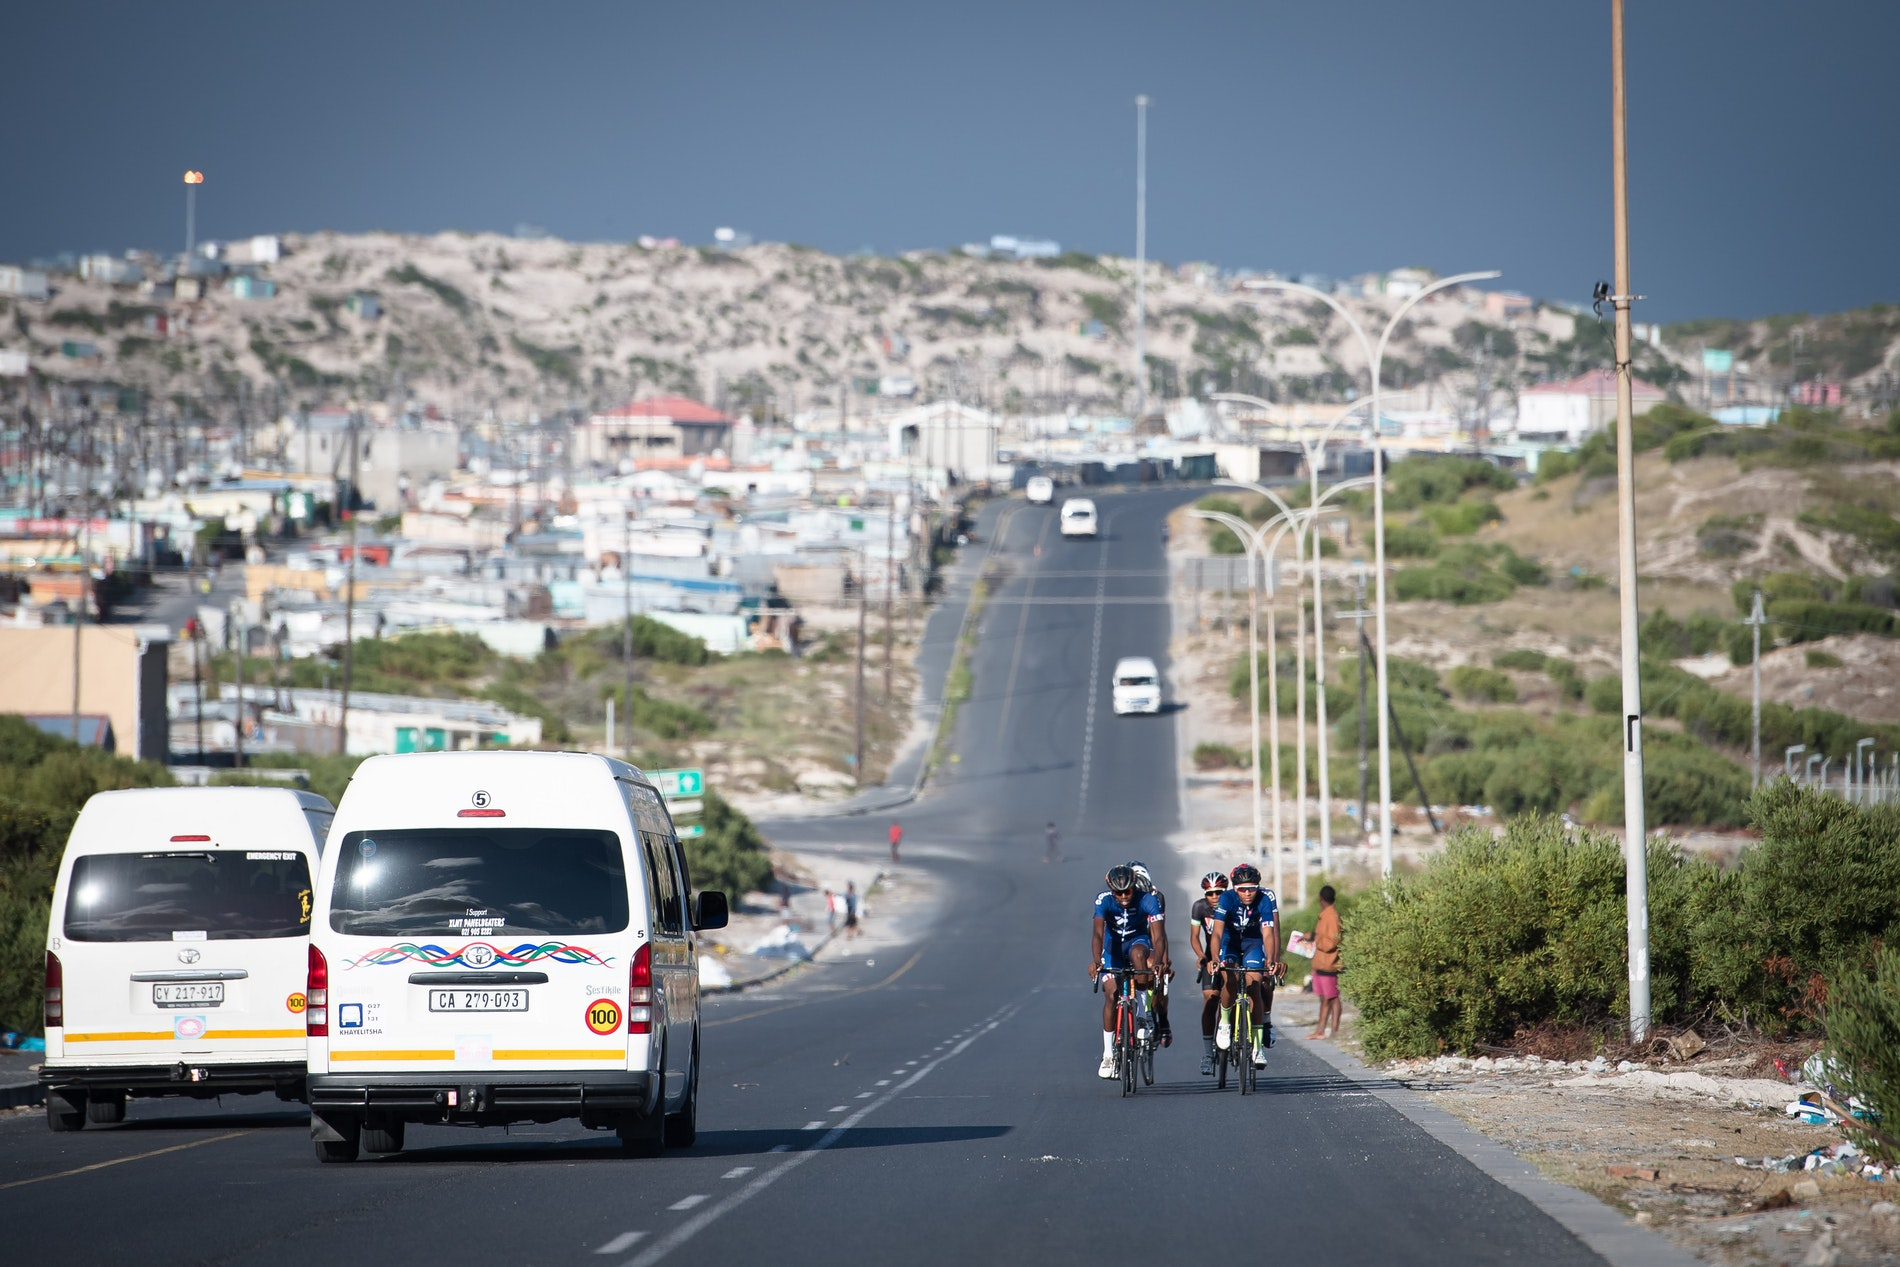 Velokhaya cyclists passing taxis on their cycle.